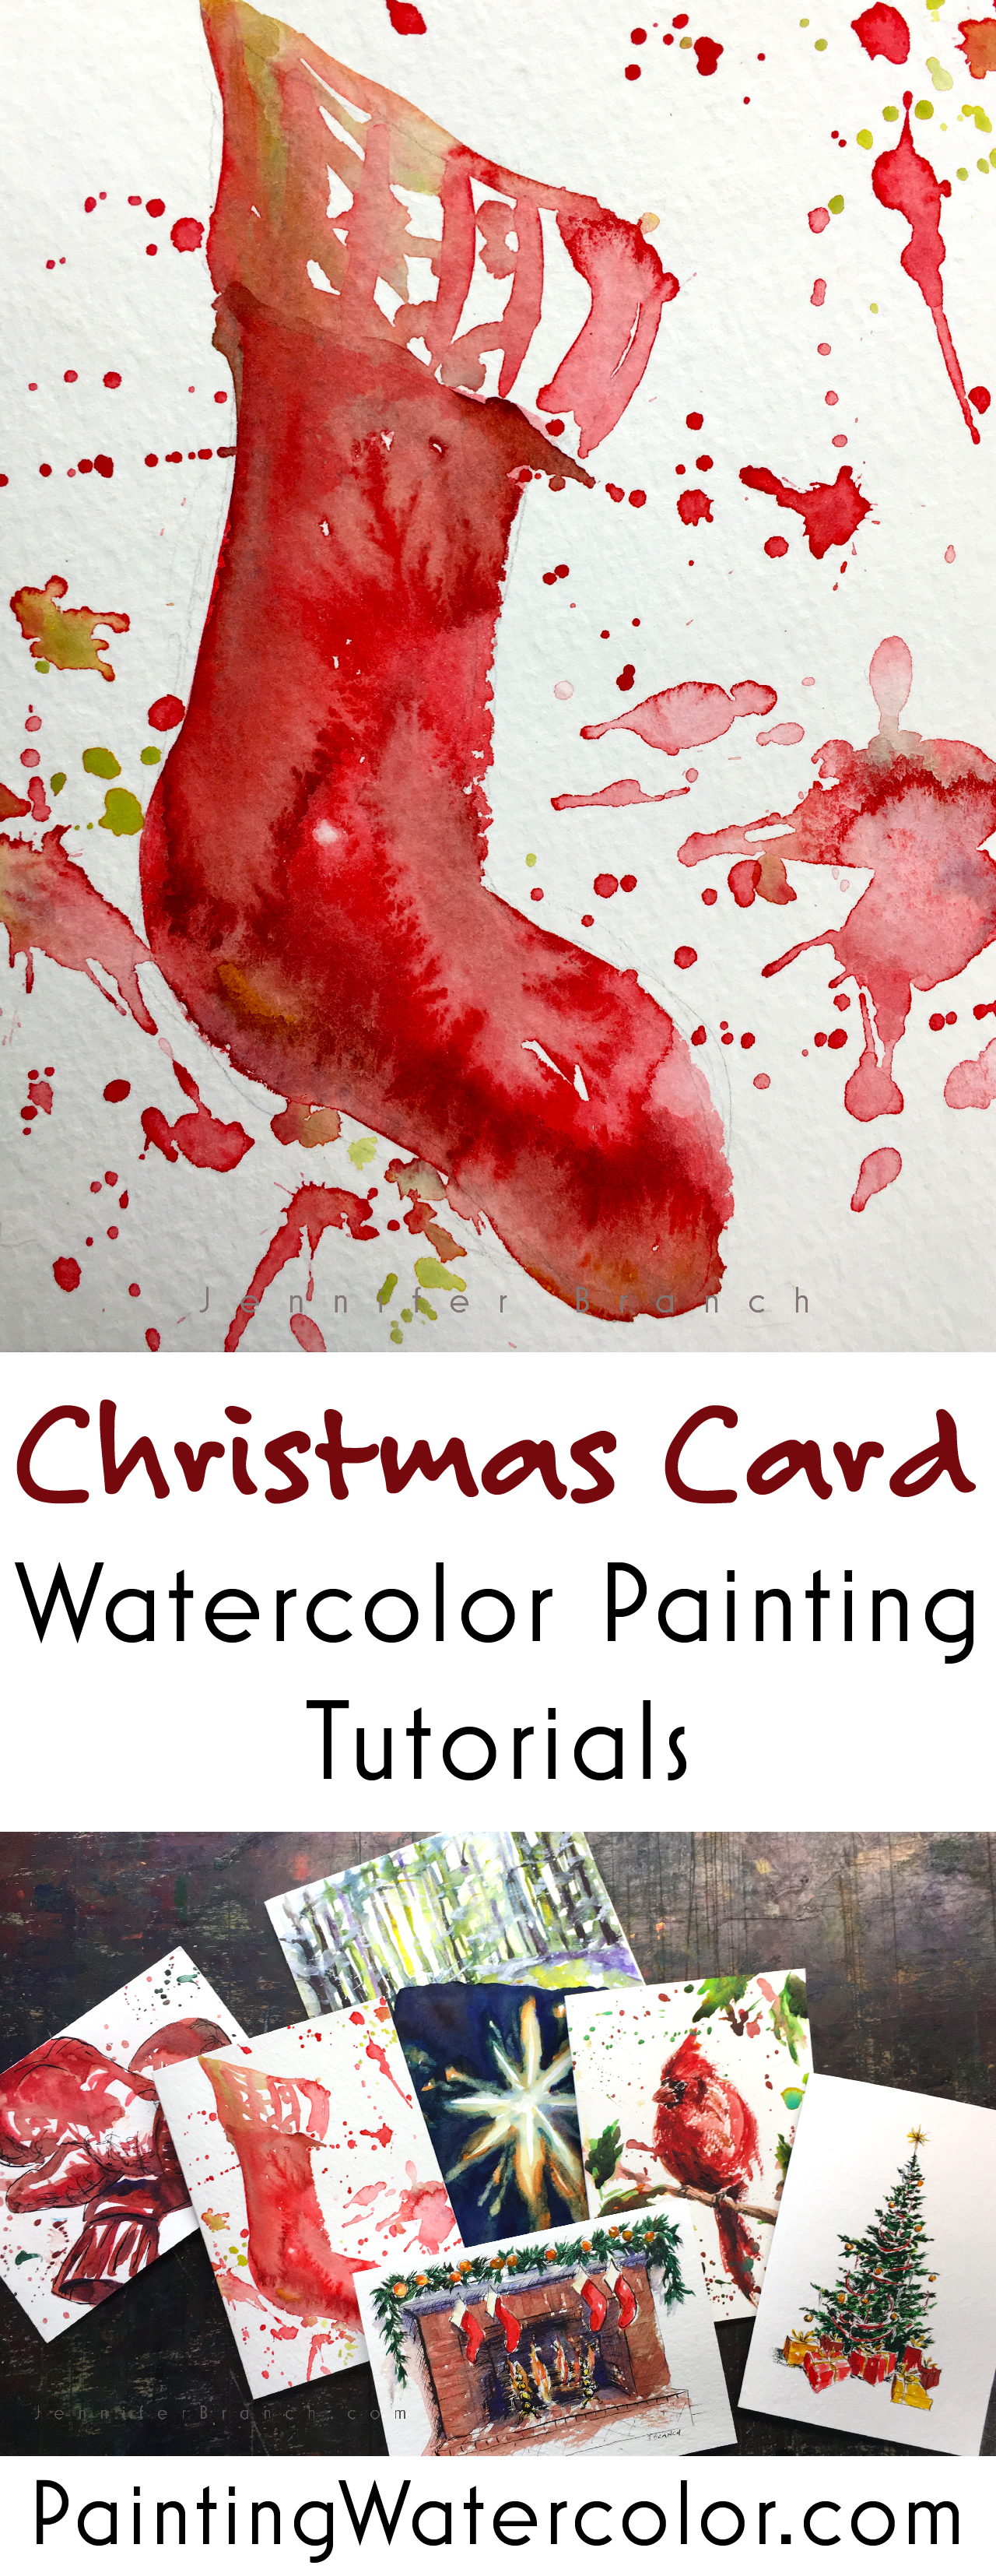 Paint beautiful Christmas cards for your family and friends. This charming Christmas stocking takes less than 5 minutes to paint! Youtube video!